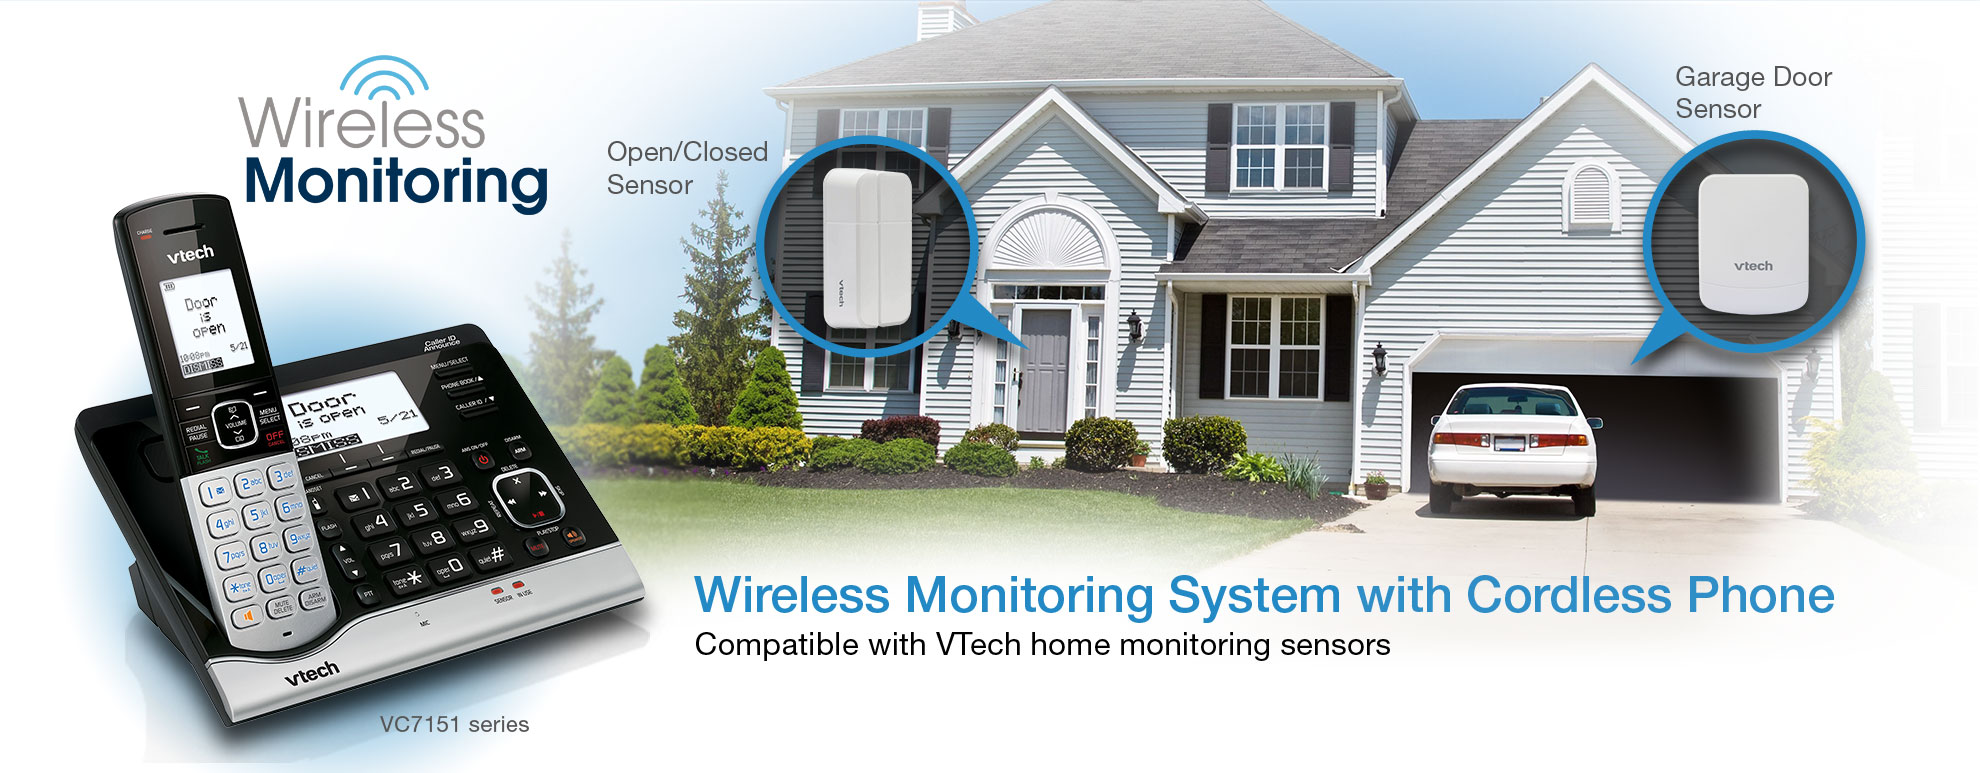 Wireless Monitoring System with Cordless Phone - Compatible with VTech home monitoring sensors